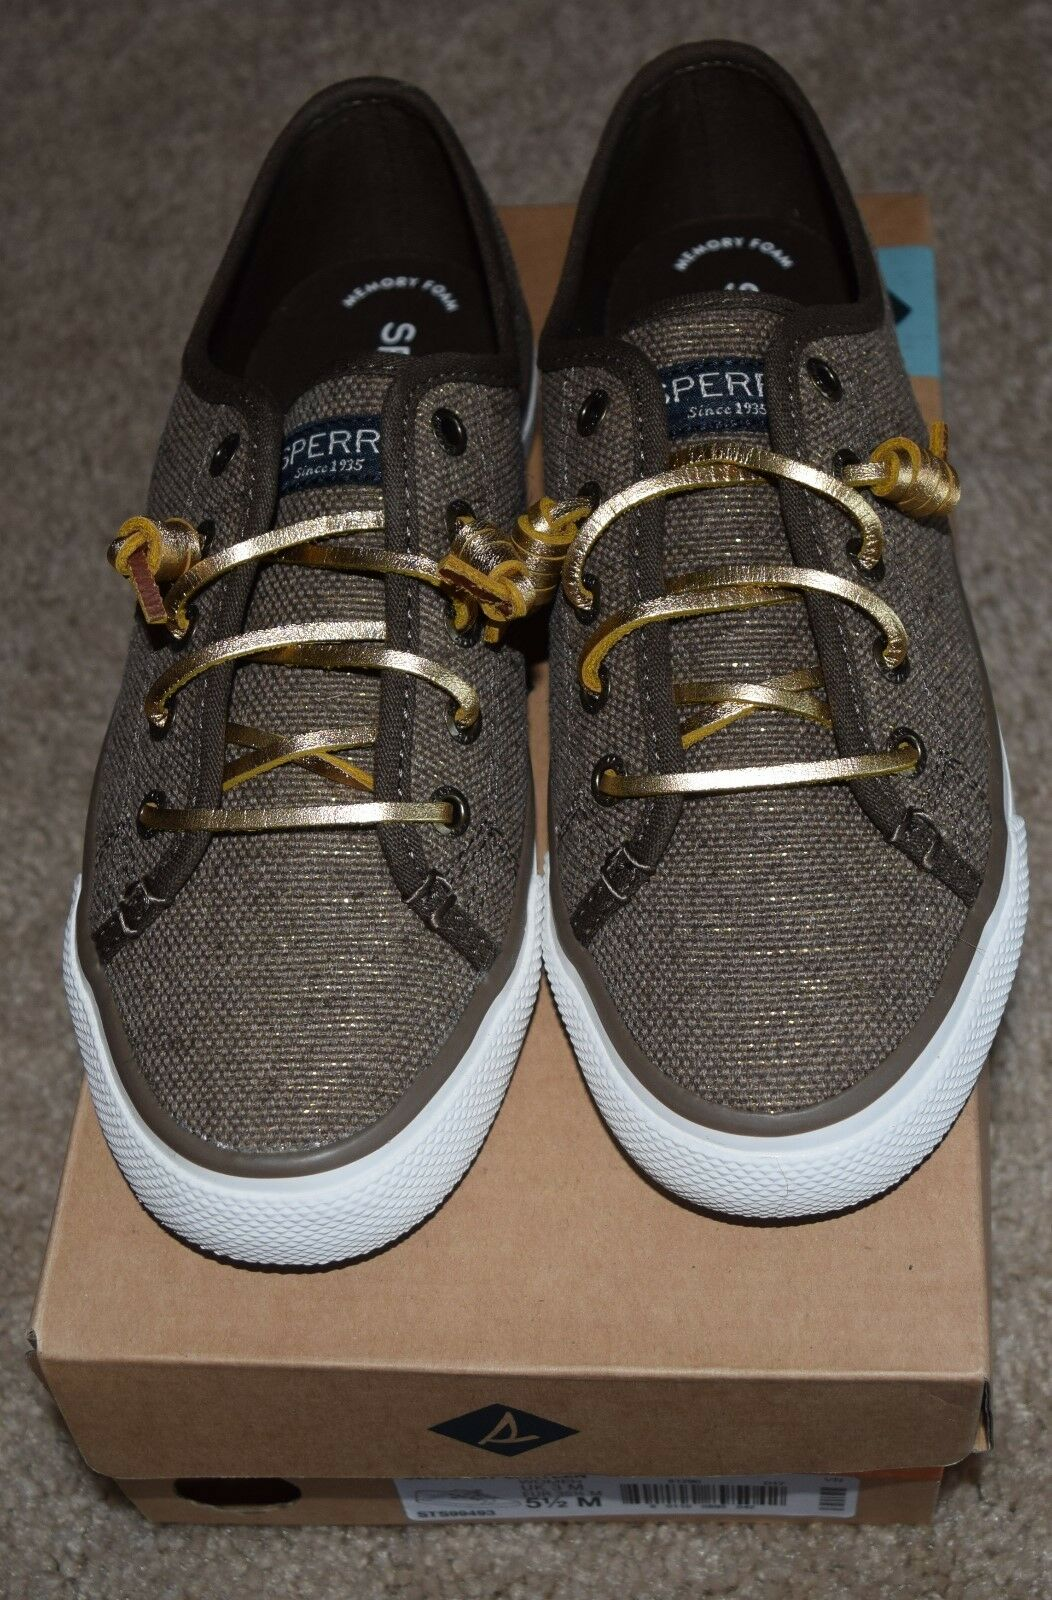 NEW! Women's Sperry Top-Sider Size 5.5M Seacoast Canteen Brown/Gold No Tie Shoes